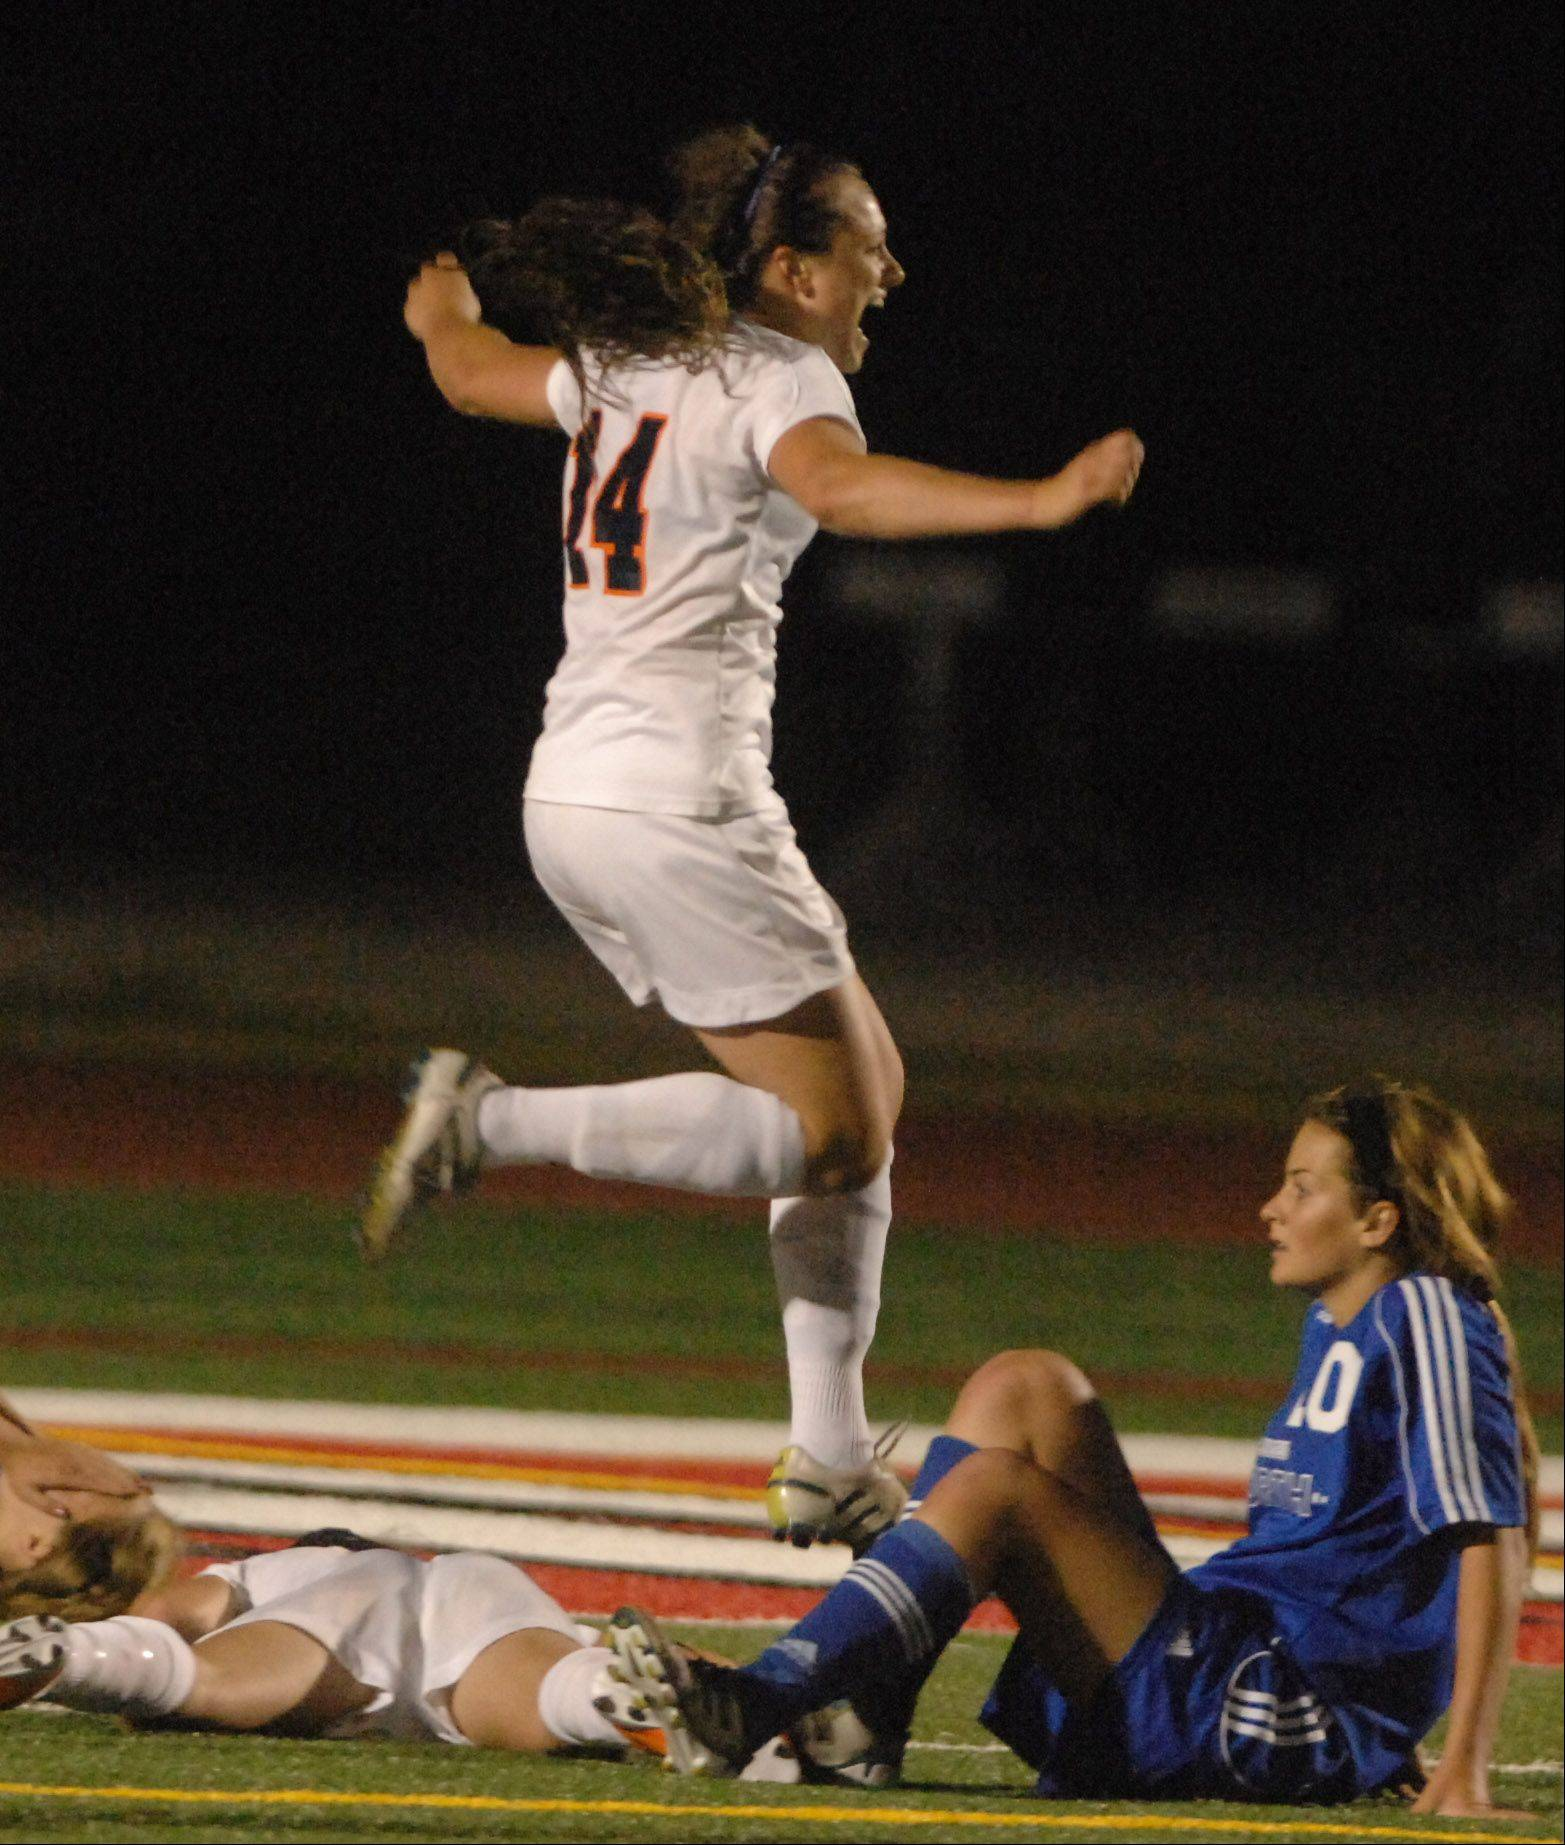 Christa Szalach of Naperville North jumps into the air after scoring the winning goal during the class 3A girls championship game at North Central College.